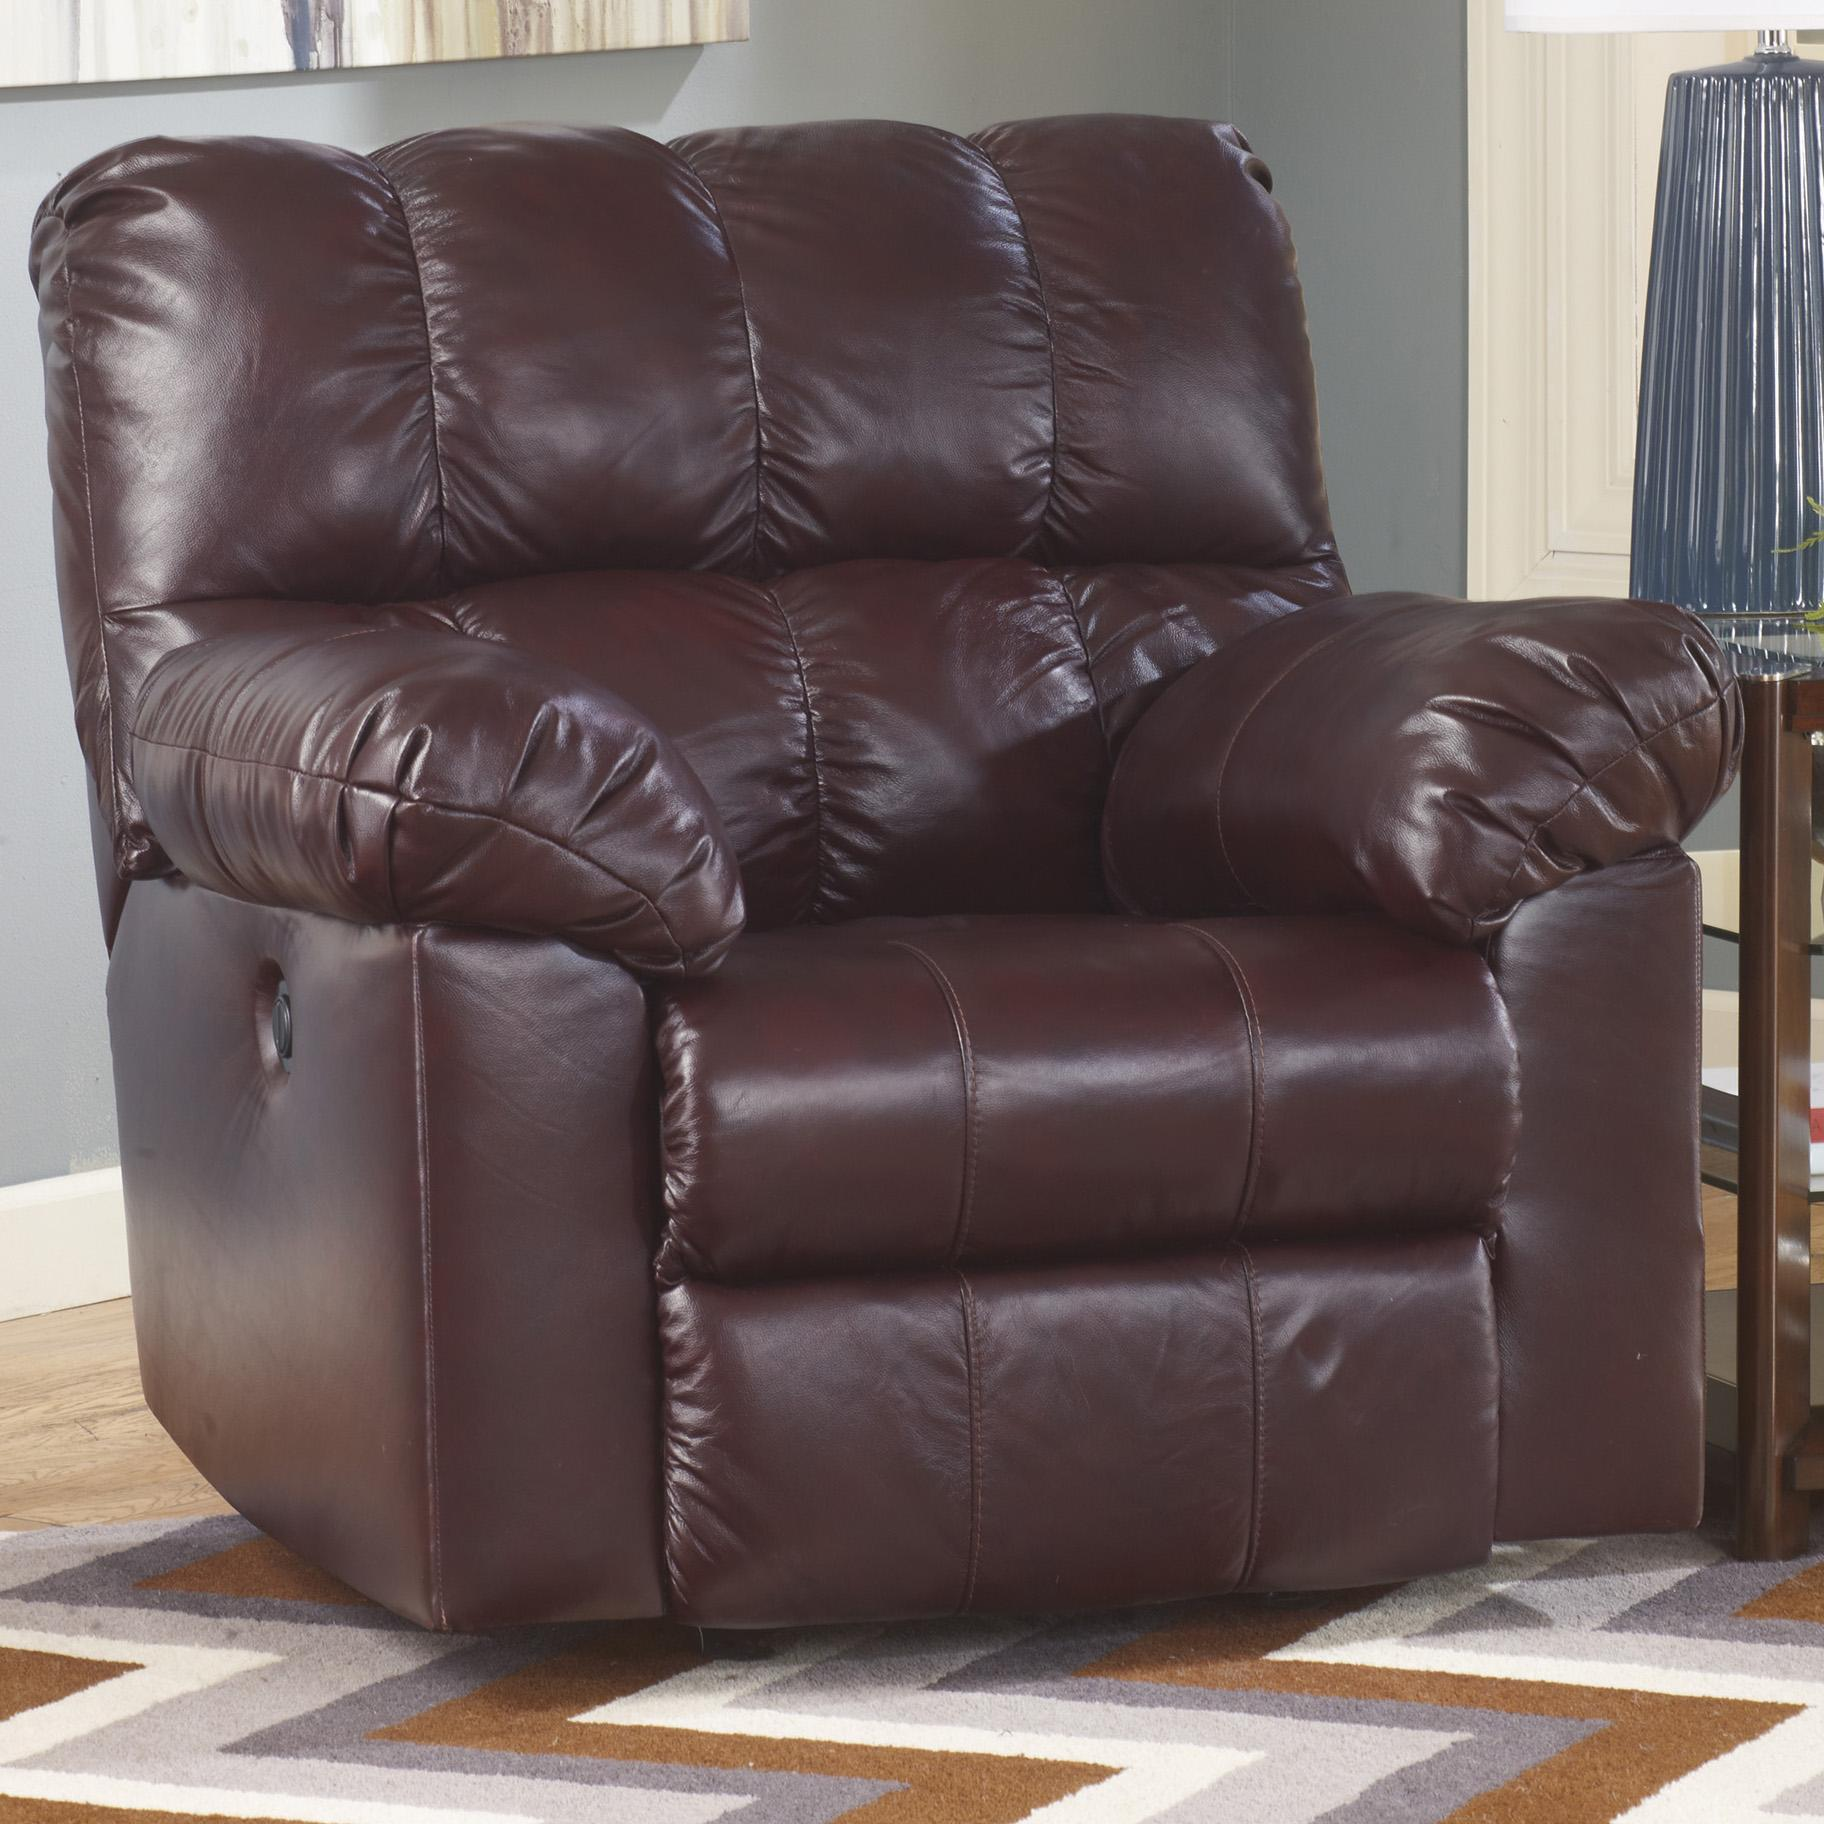 Signature Design by Ashley Kennard - Burgundy Rocker Recliner - Item Number: 2900025